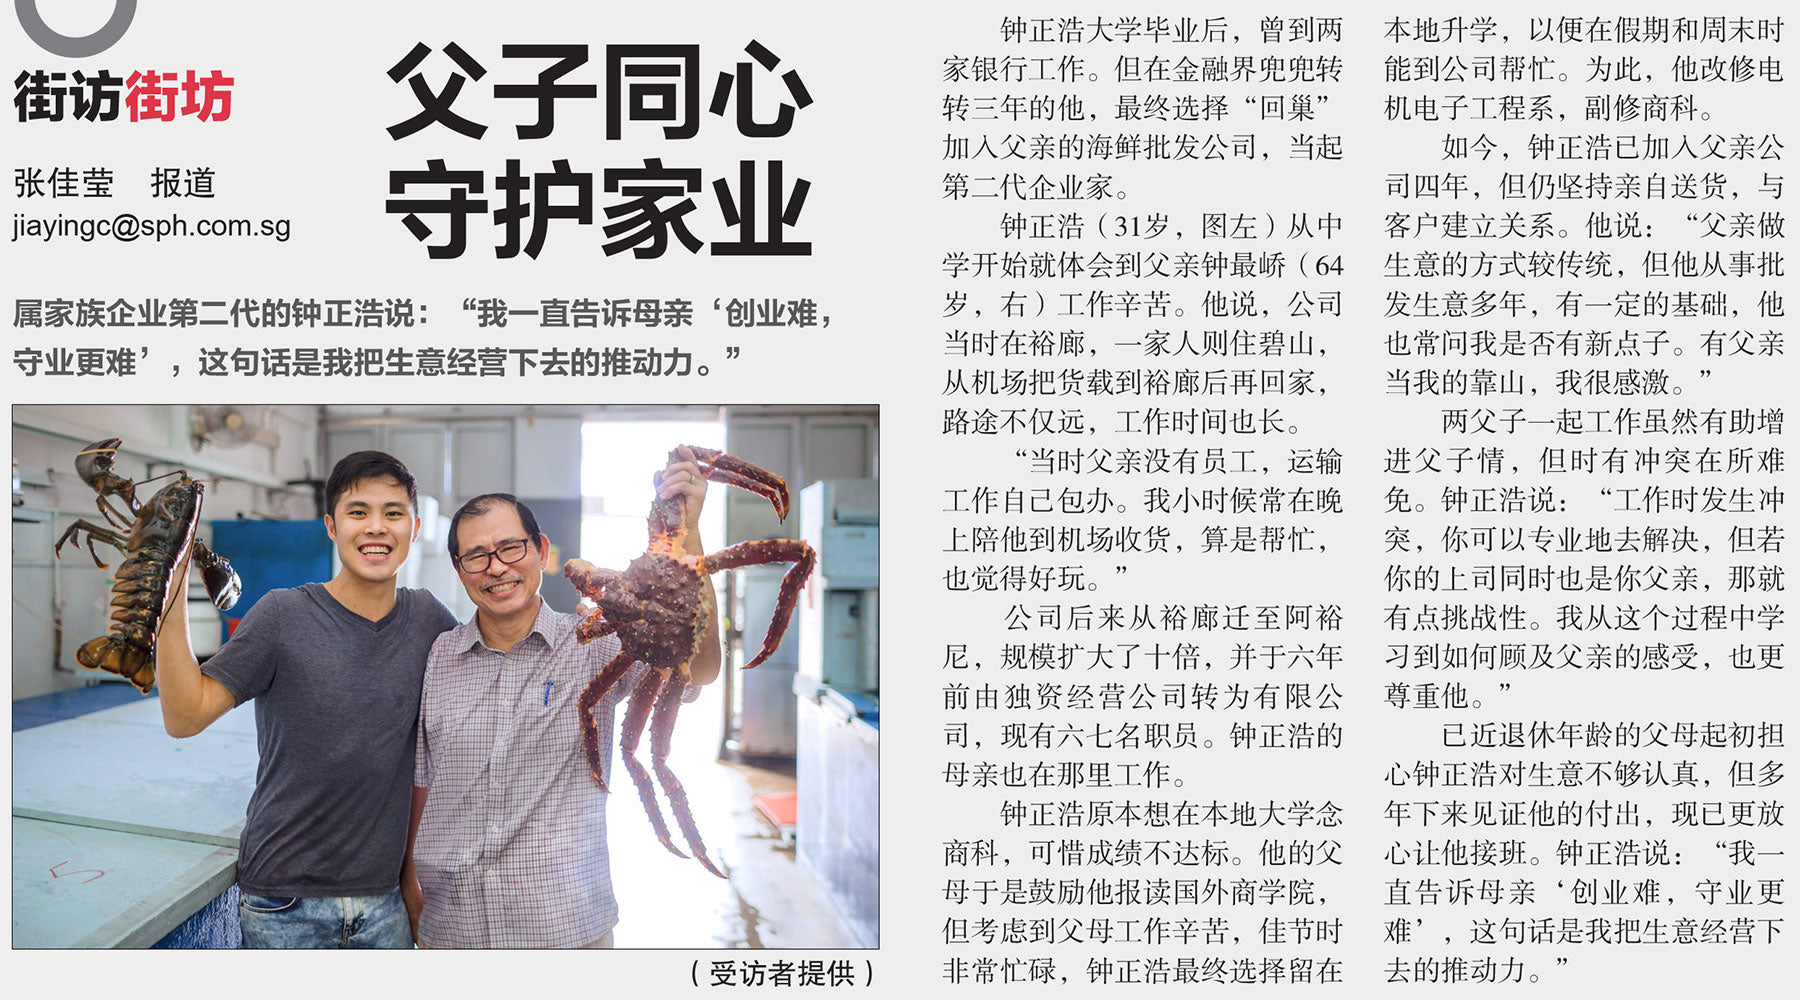 global live seafood featured in lianhe zaobao article 2016